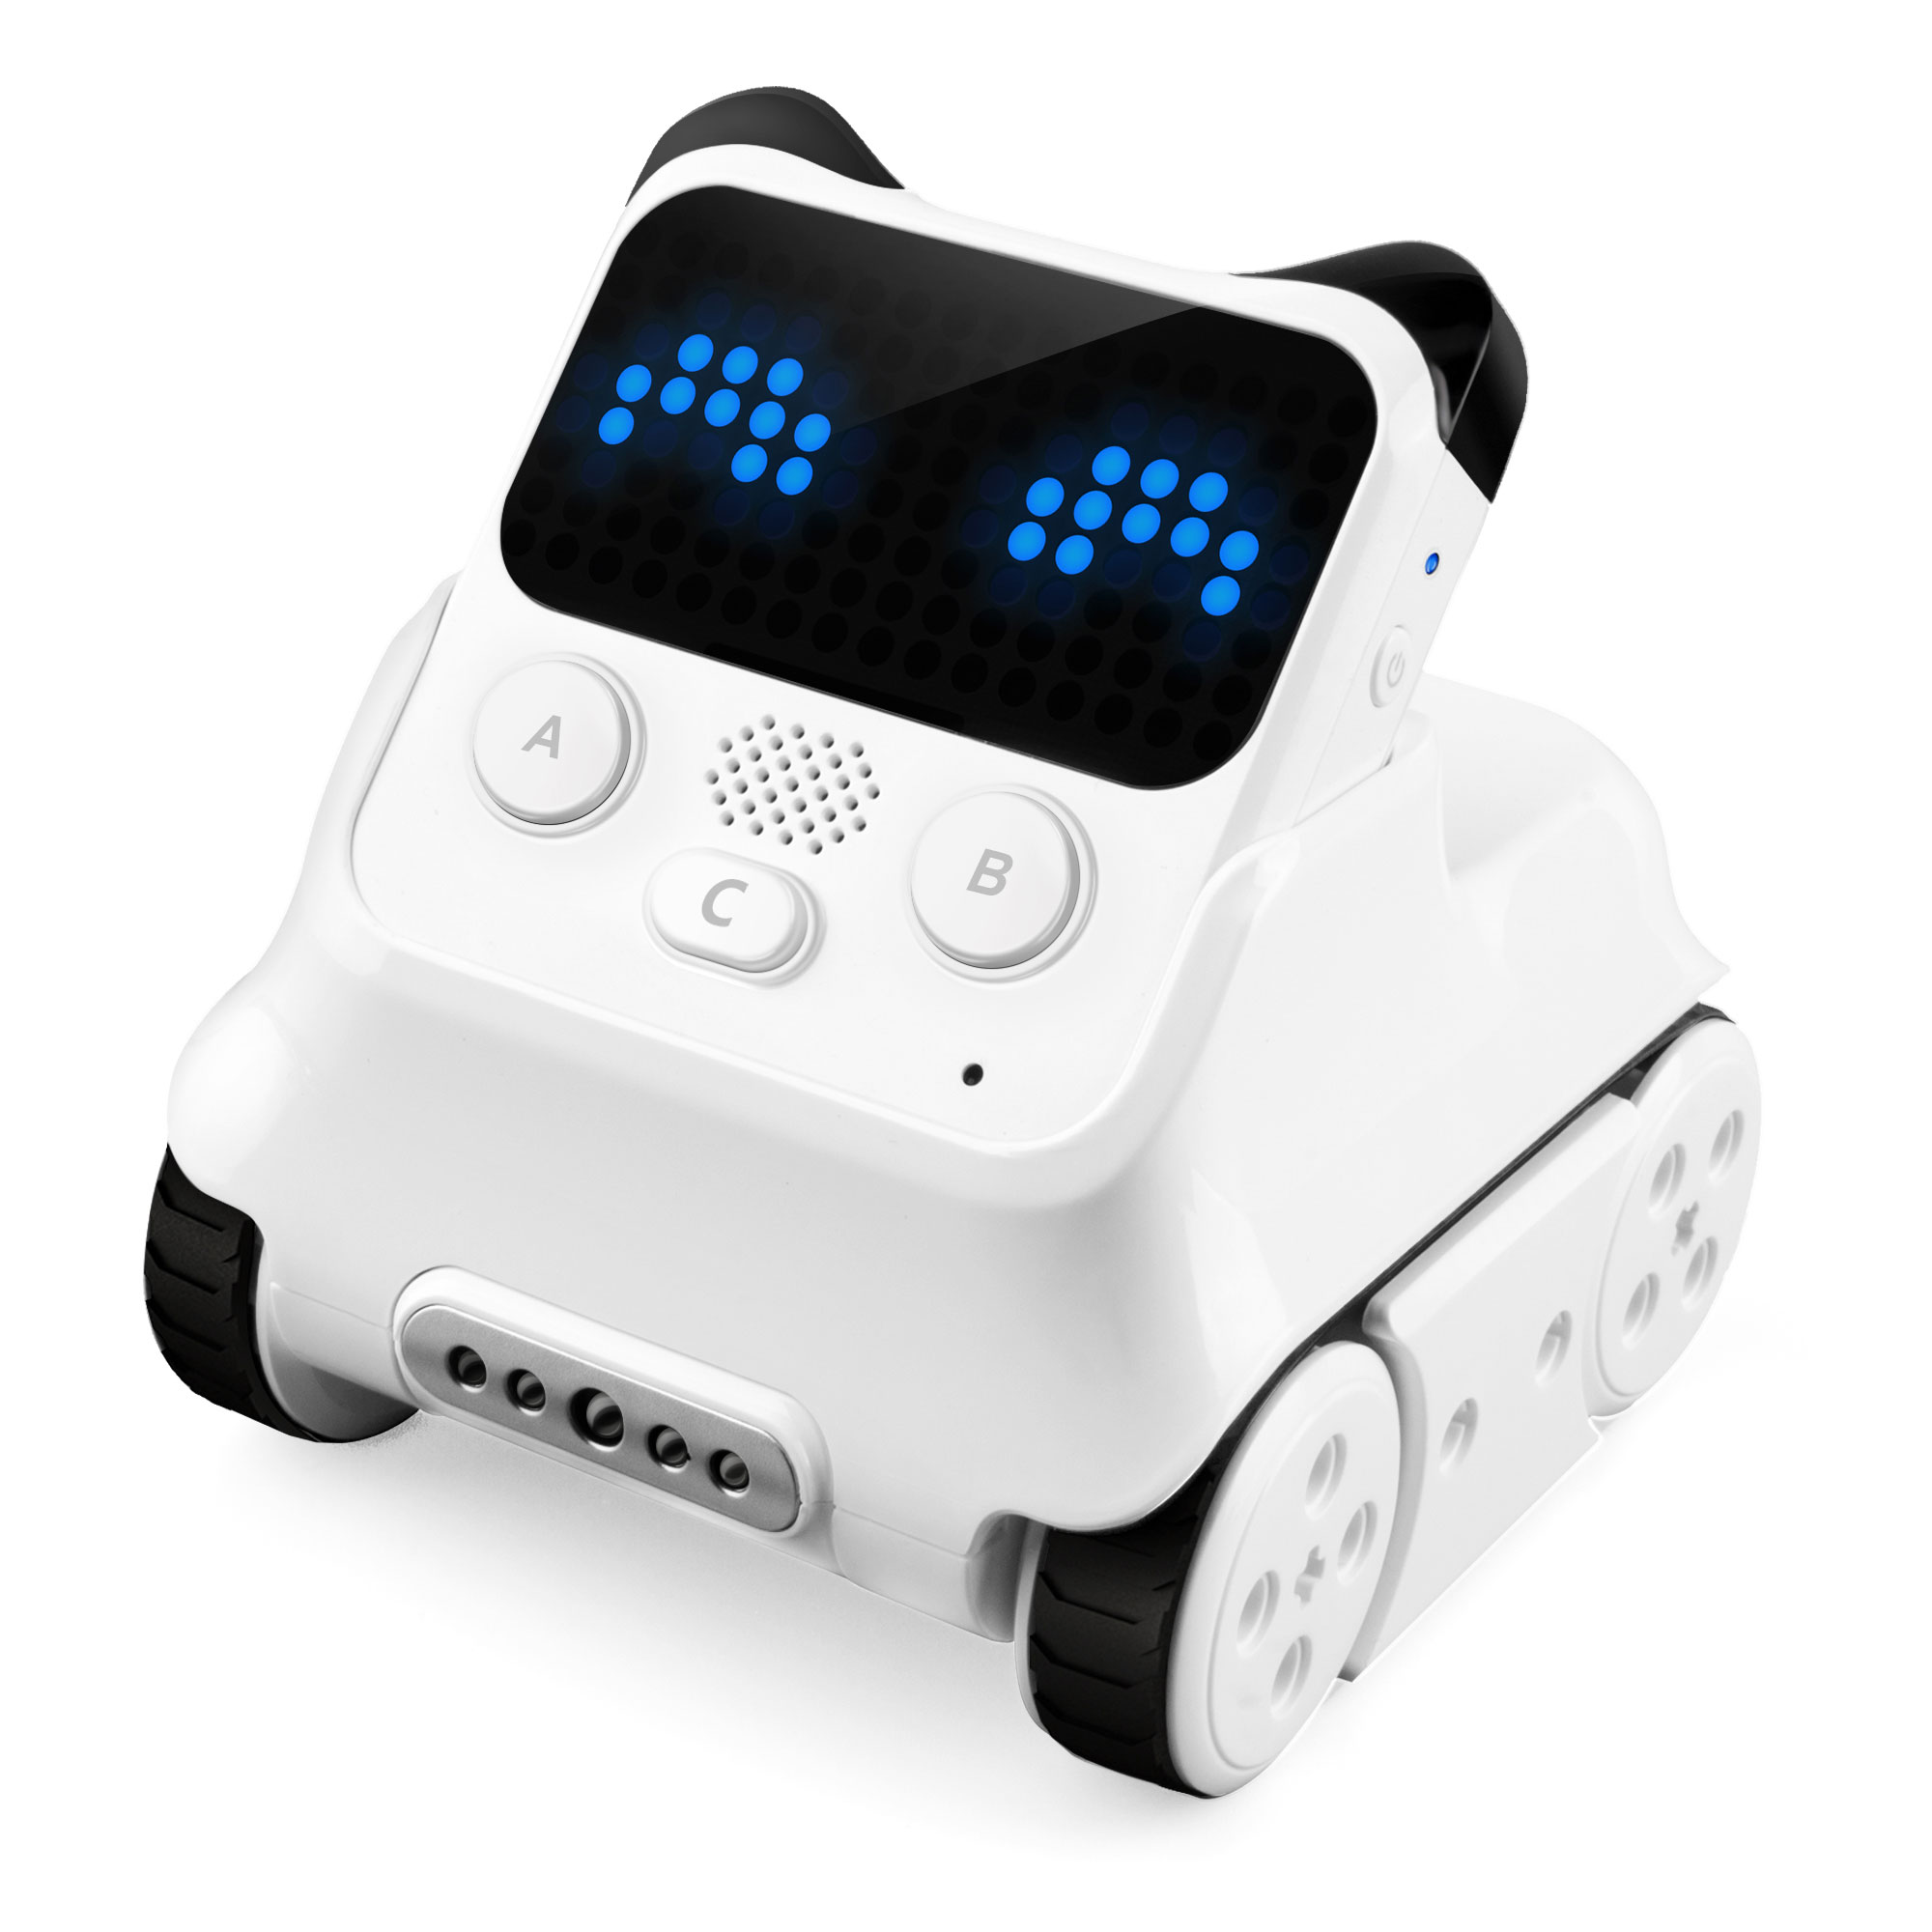 Makeblock Codey Rocky Programmable Robot, Fun Toys Gift To Learn AI, Python, Remote Control For Kids Age 6+